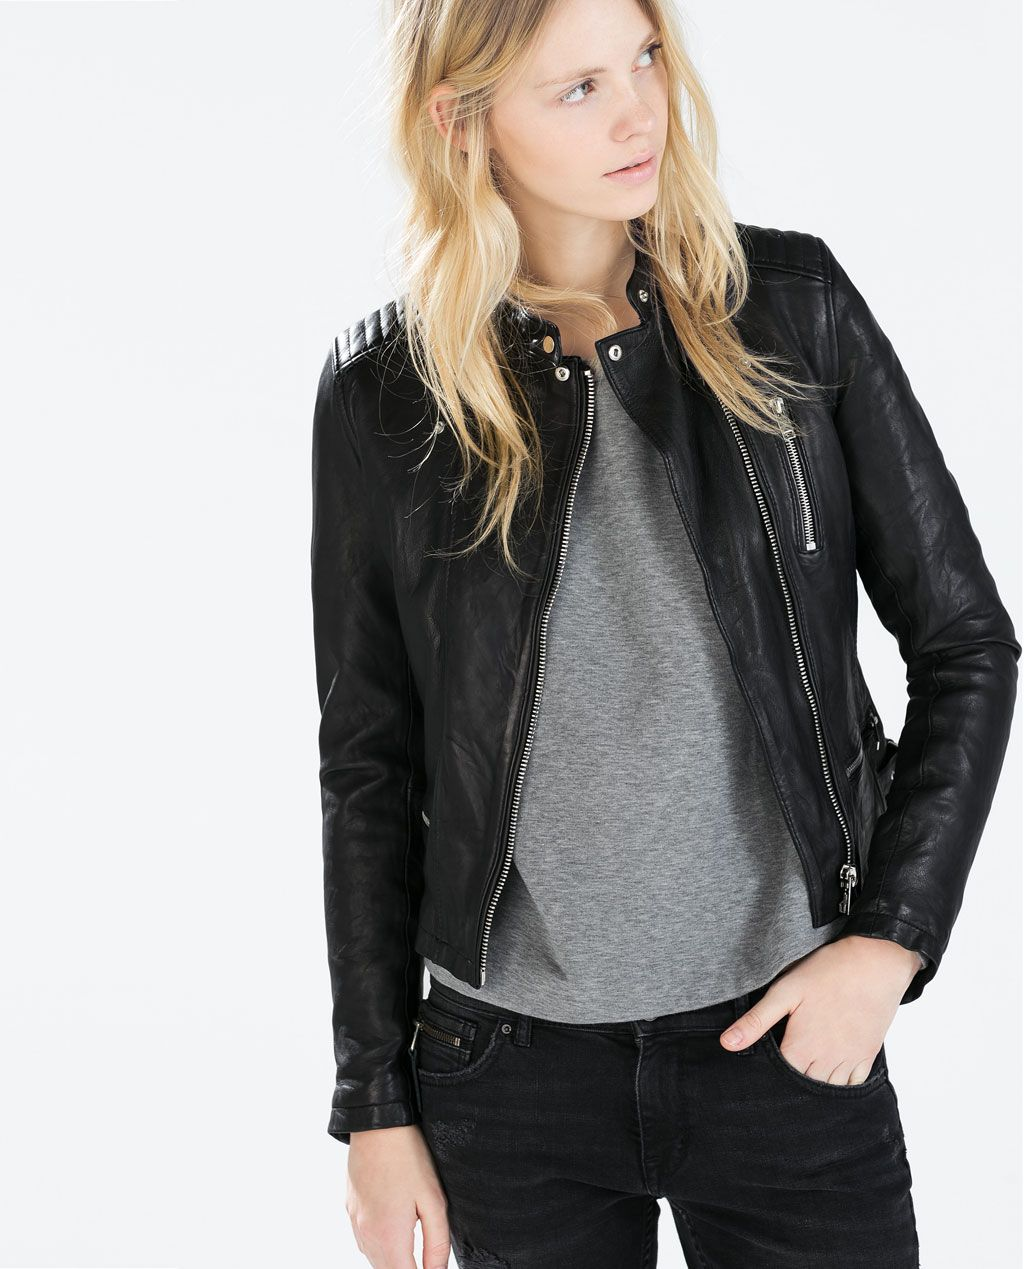 fca5d3c37 Image 2 of LEATHER JACKET WITH ZIPS from Zara | I Need A Fashion ...